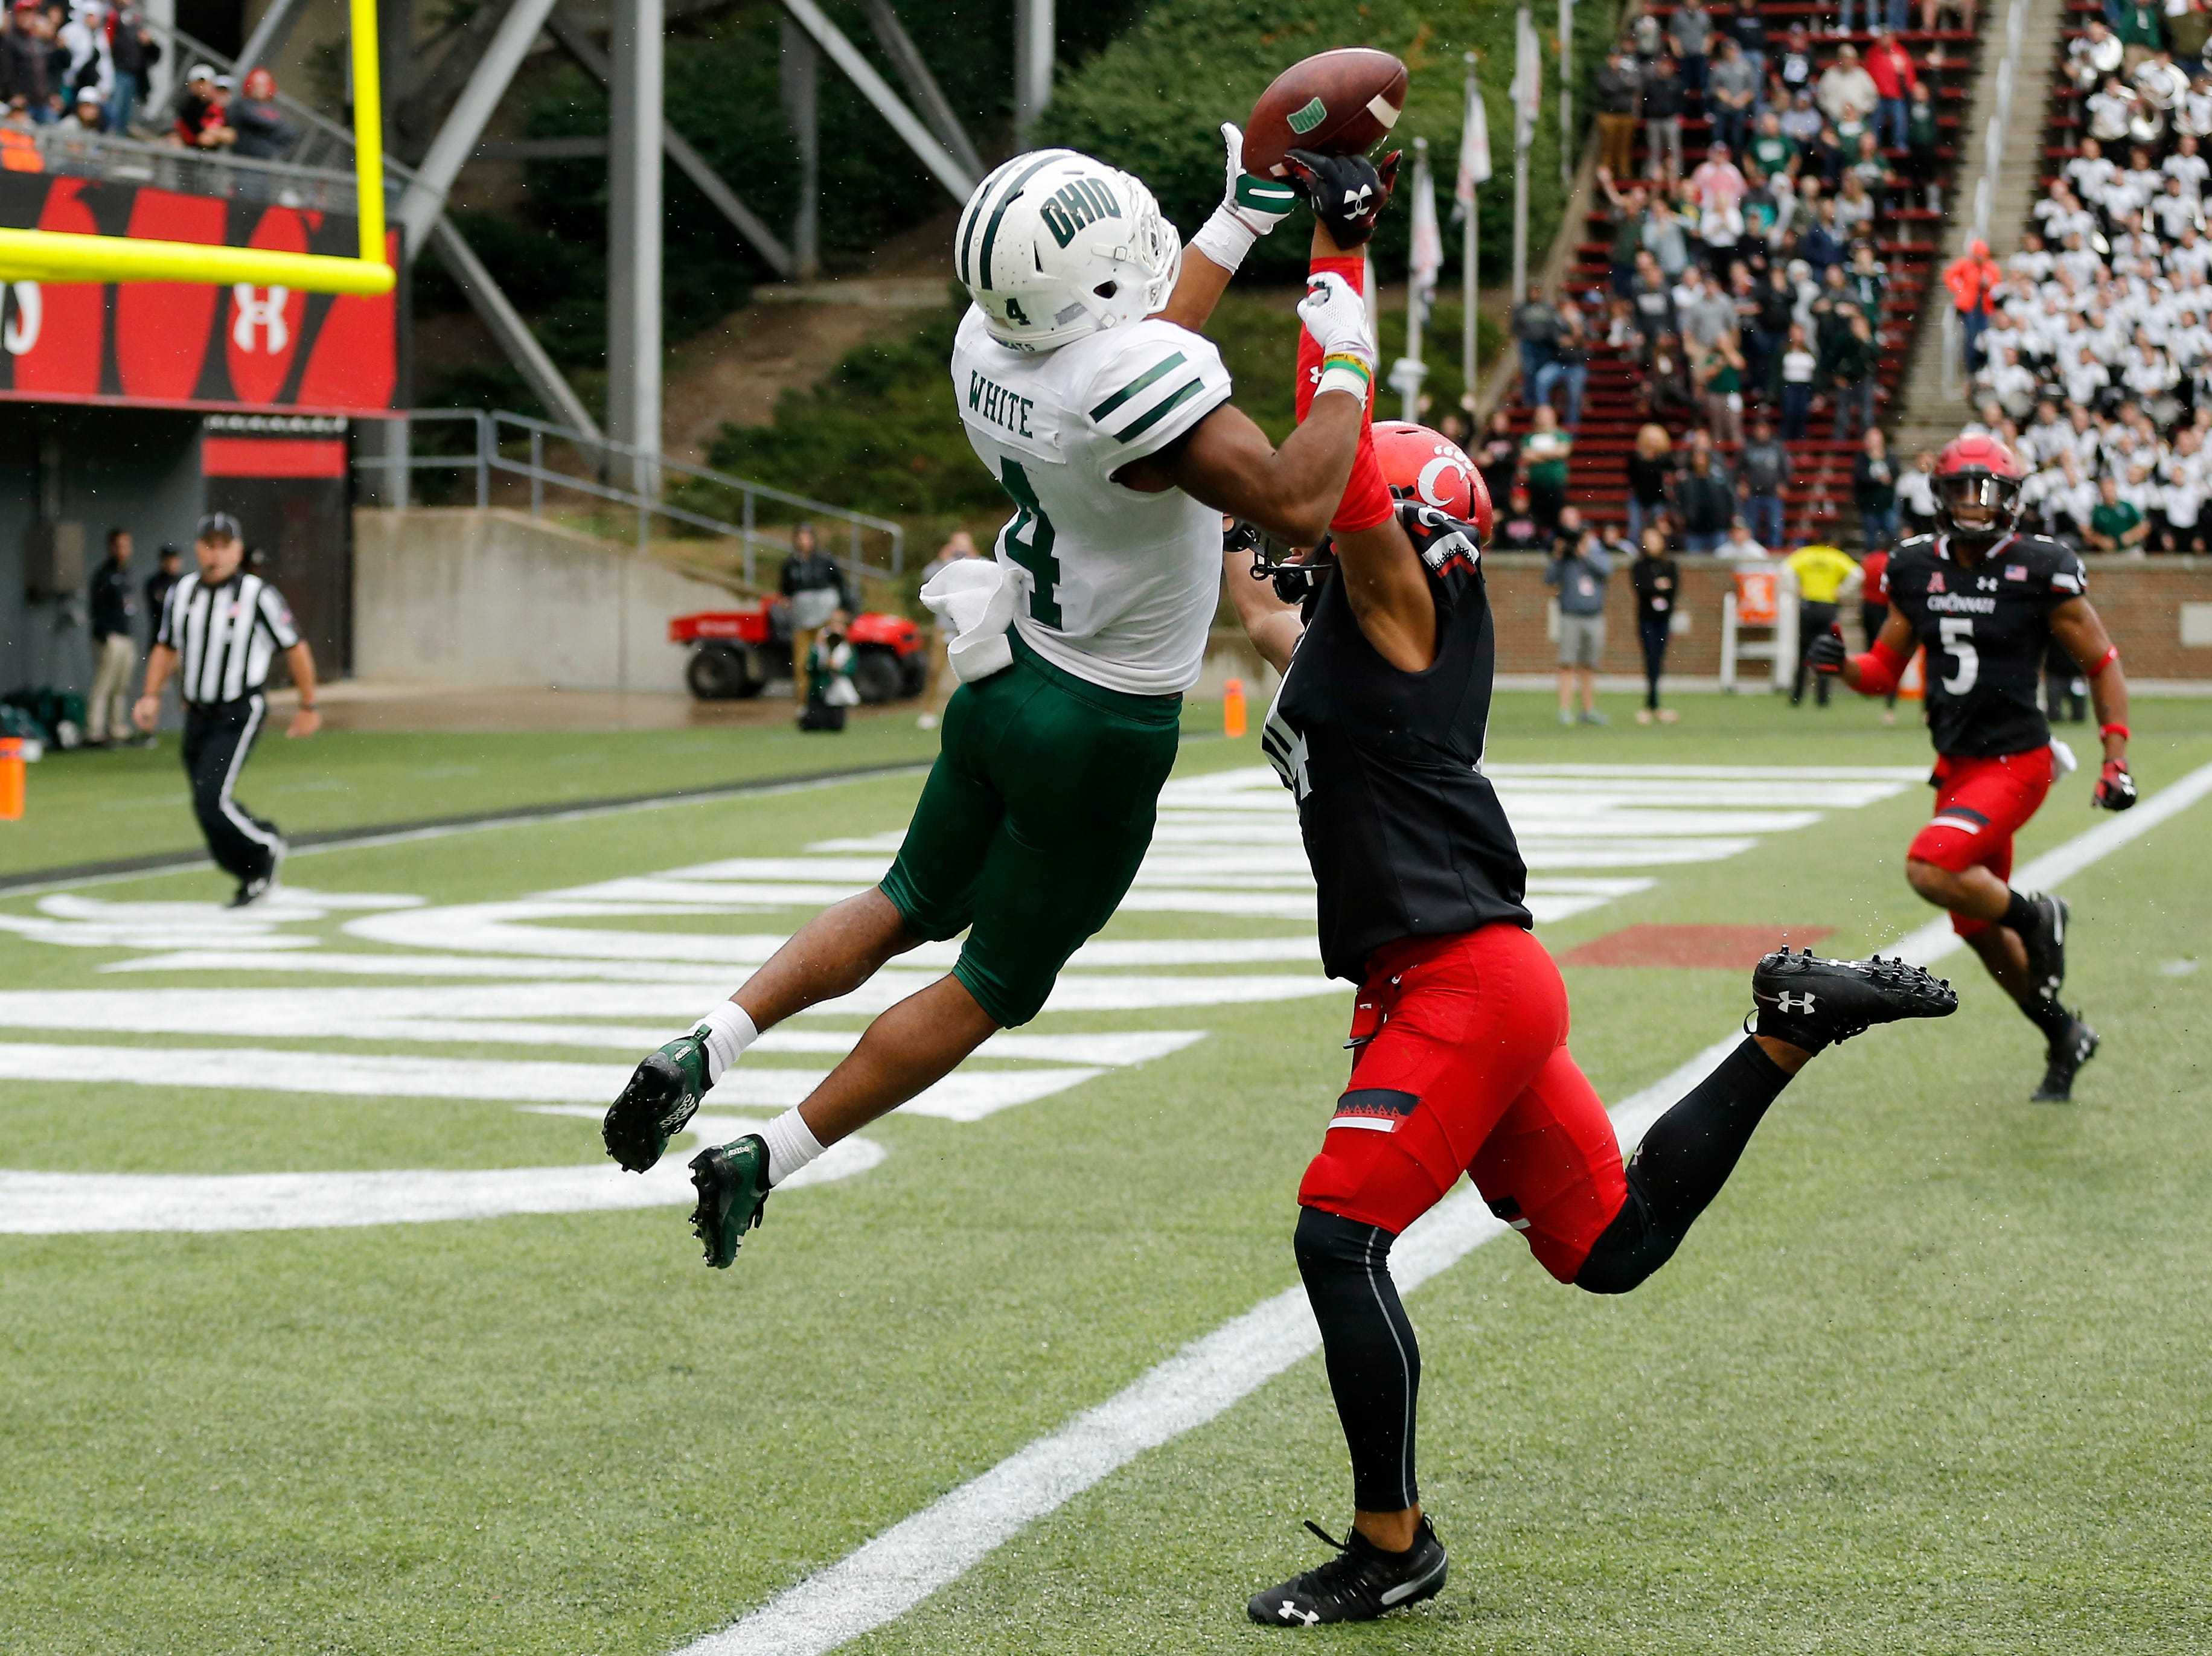 Cincinnati Bearcats cornerback Cameron Jefferies (14) breaks up a pass intended for Ohio Bobcats wide receiver Papi White (4) and is called for pass interference in the fourth quarter of the NCAA football game between the Cincinnati Bearcats and the Ohio Bobcats at Nippert Stadium on the University of Cincinnati campus in Cincinnati on Saturday, Sept. 22, 2018. The Bearcats overcame a 24-7 deficit at halftime to win 34-30, improving to 4-0 on the season.